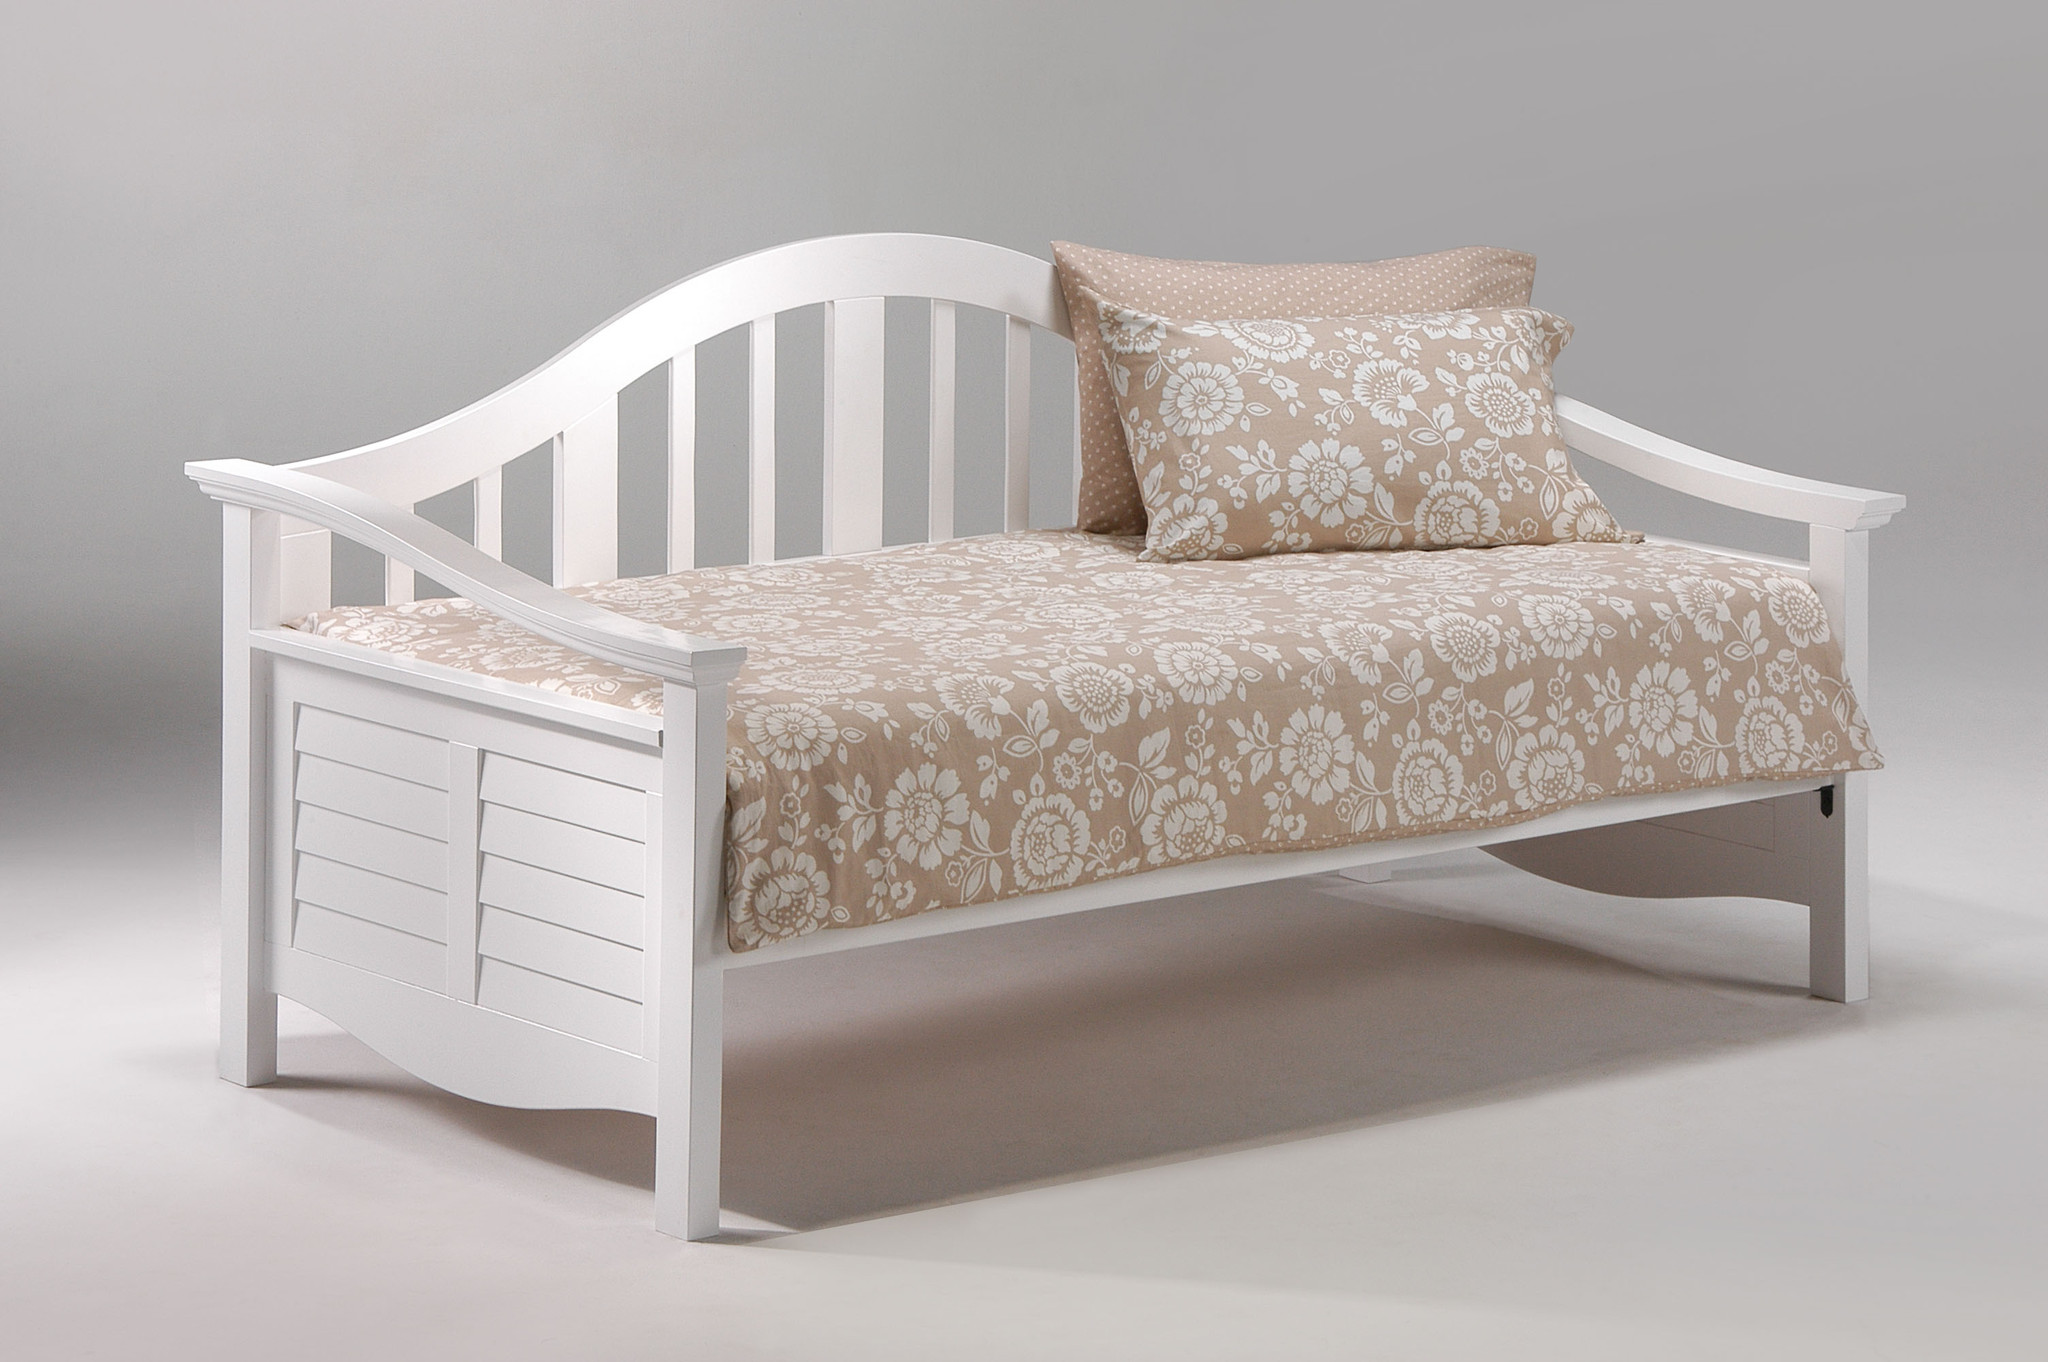 night day seagull daybed white.jpg